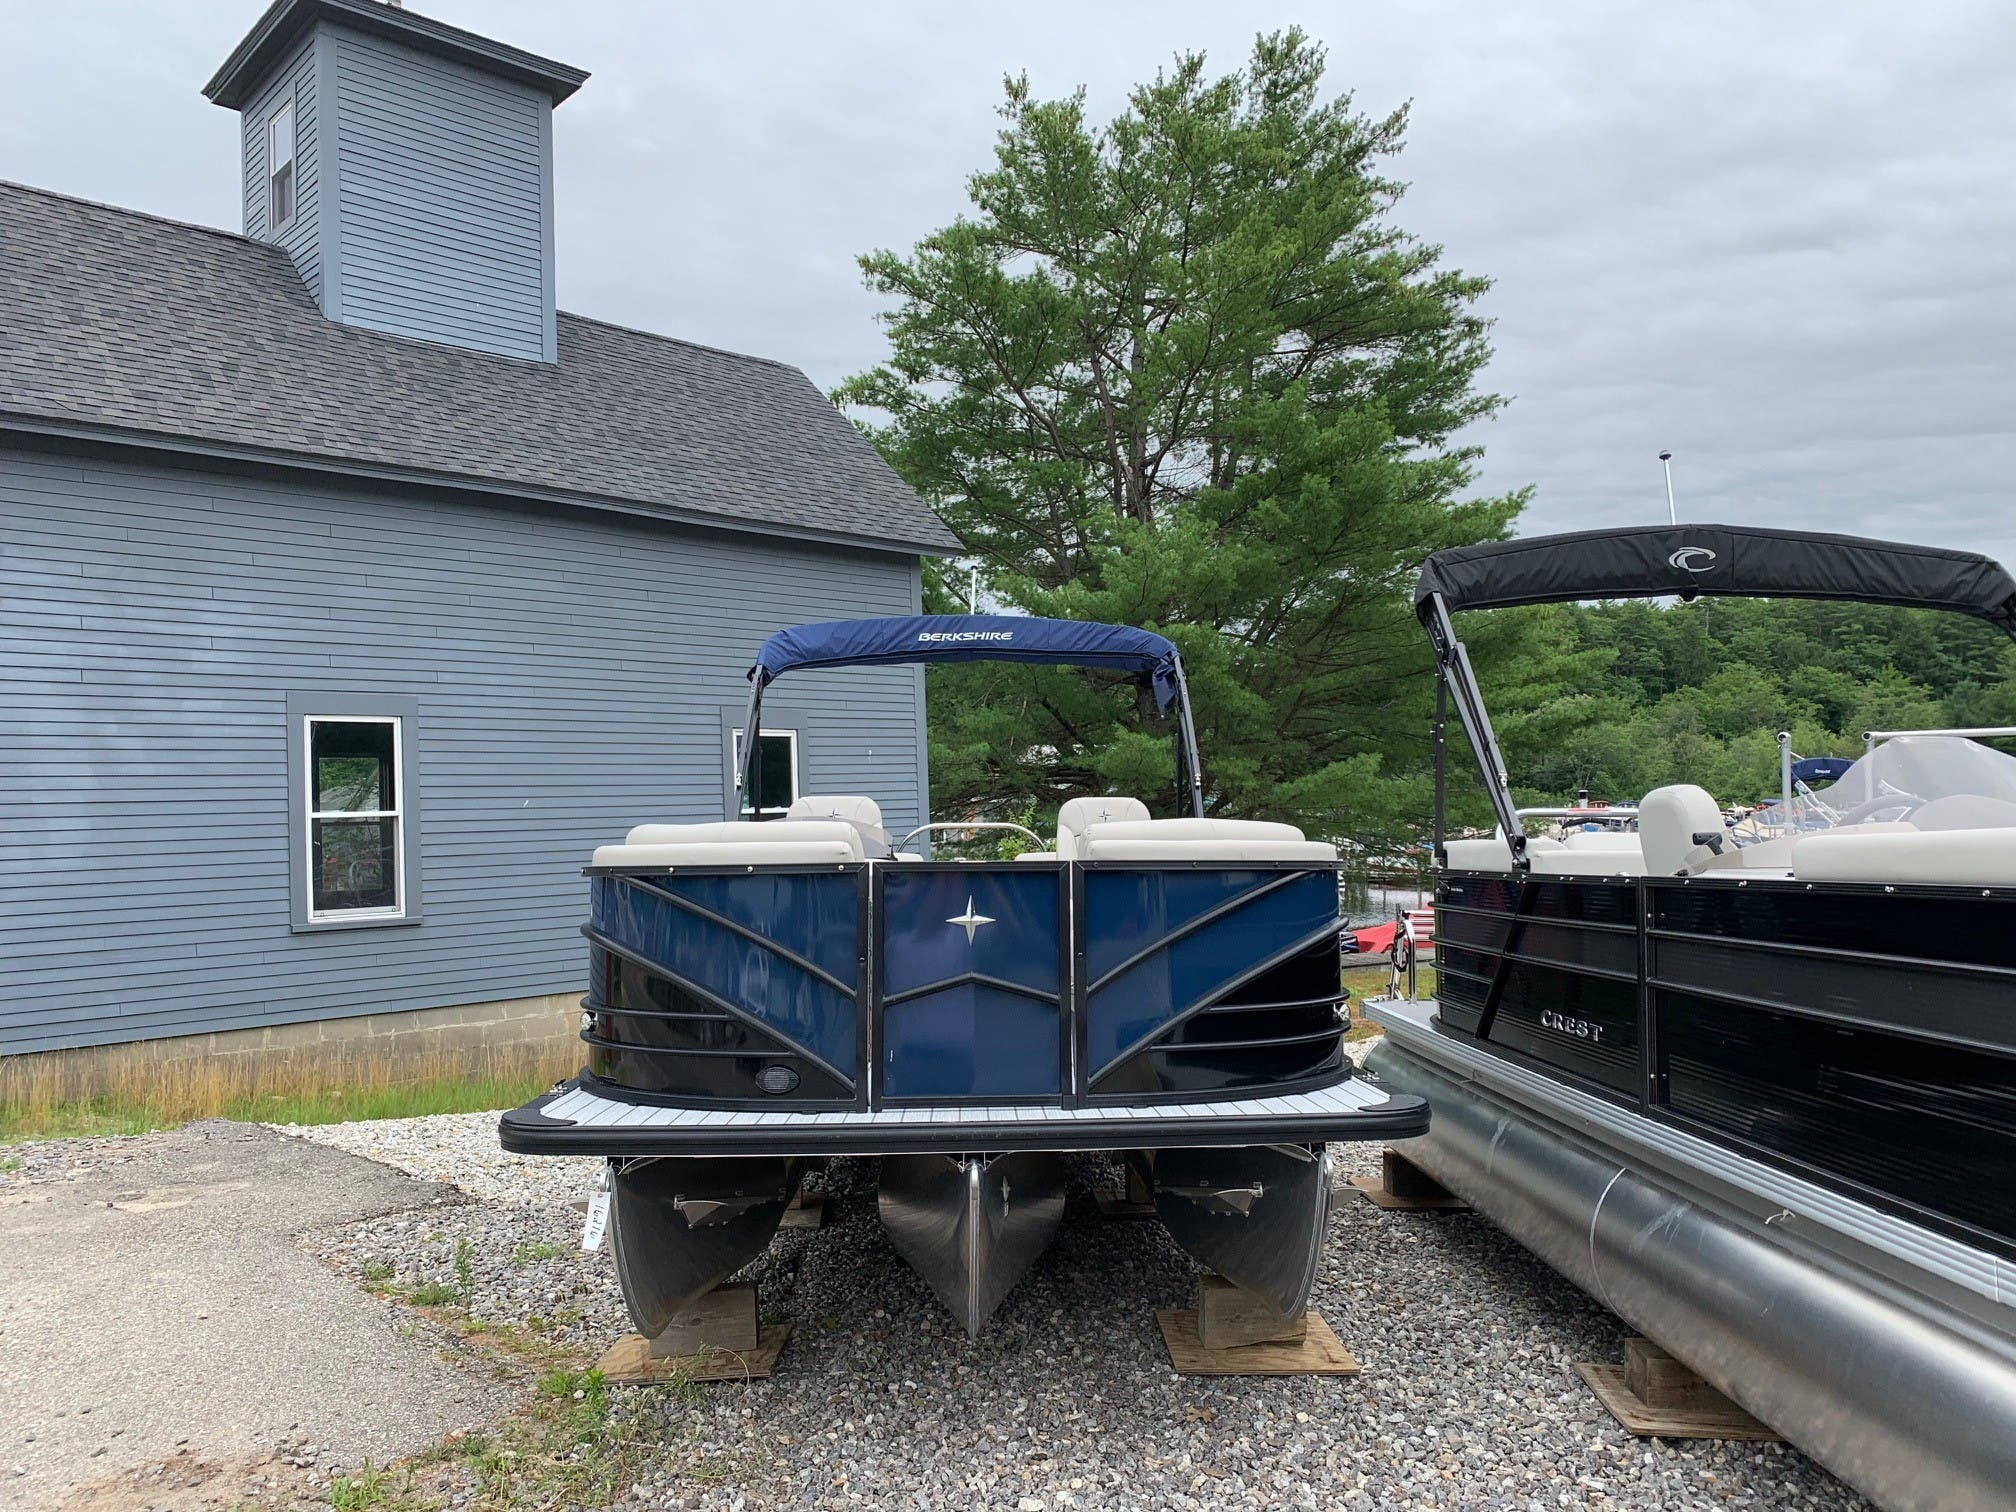 2020 Berkshire Pontoons boat for sale, model of the boat is 23rfx Sts & Image # 6 of 11